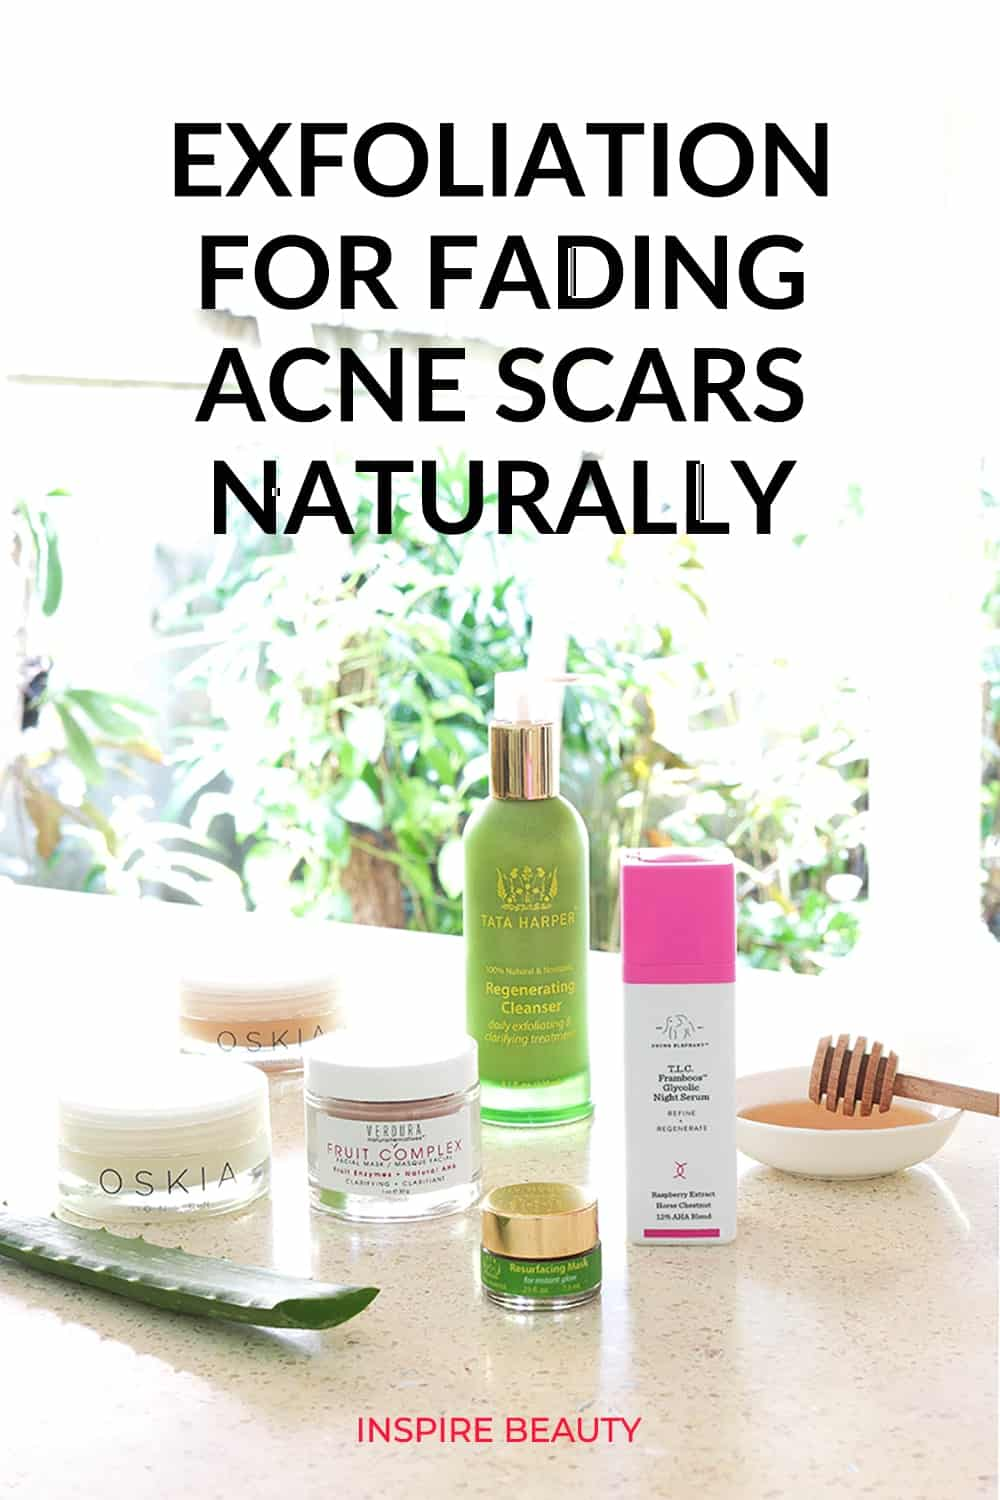 How to fade acne scars with exfoliation featuring products from Tata Harper, Oskia, VERDURA naturalternatives, Drunk Elephant